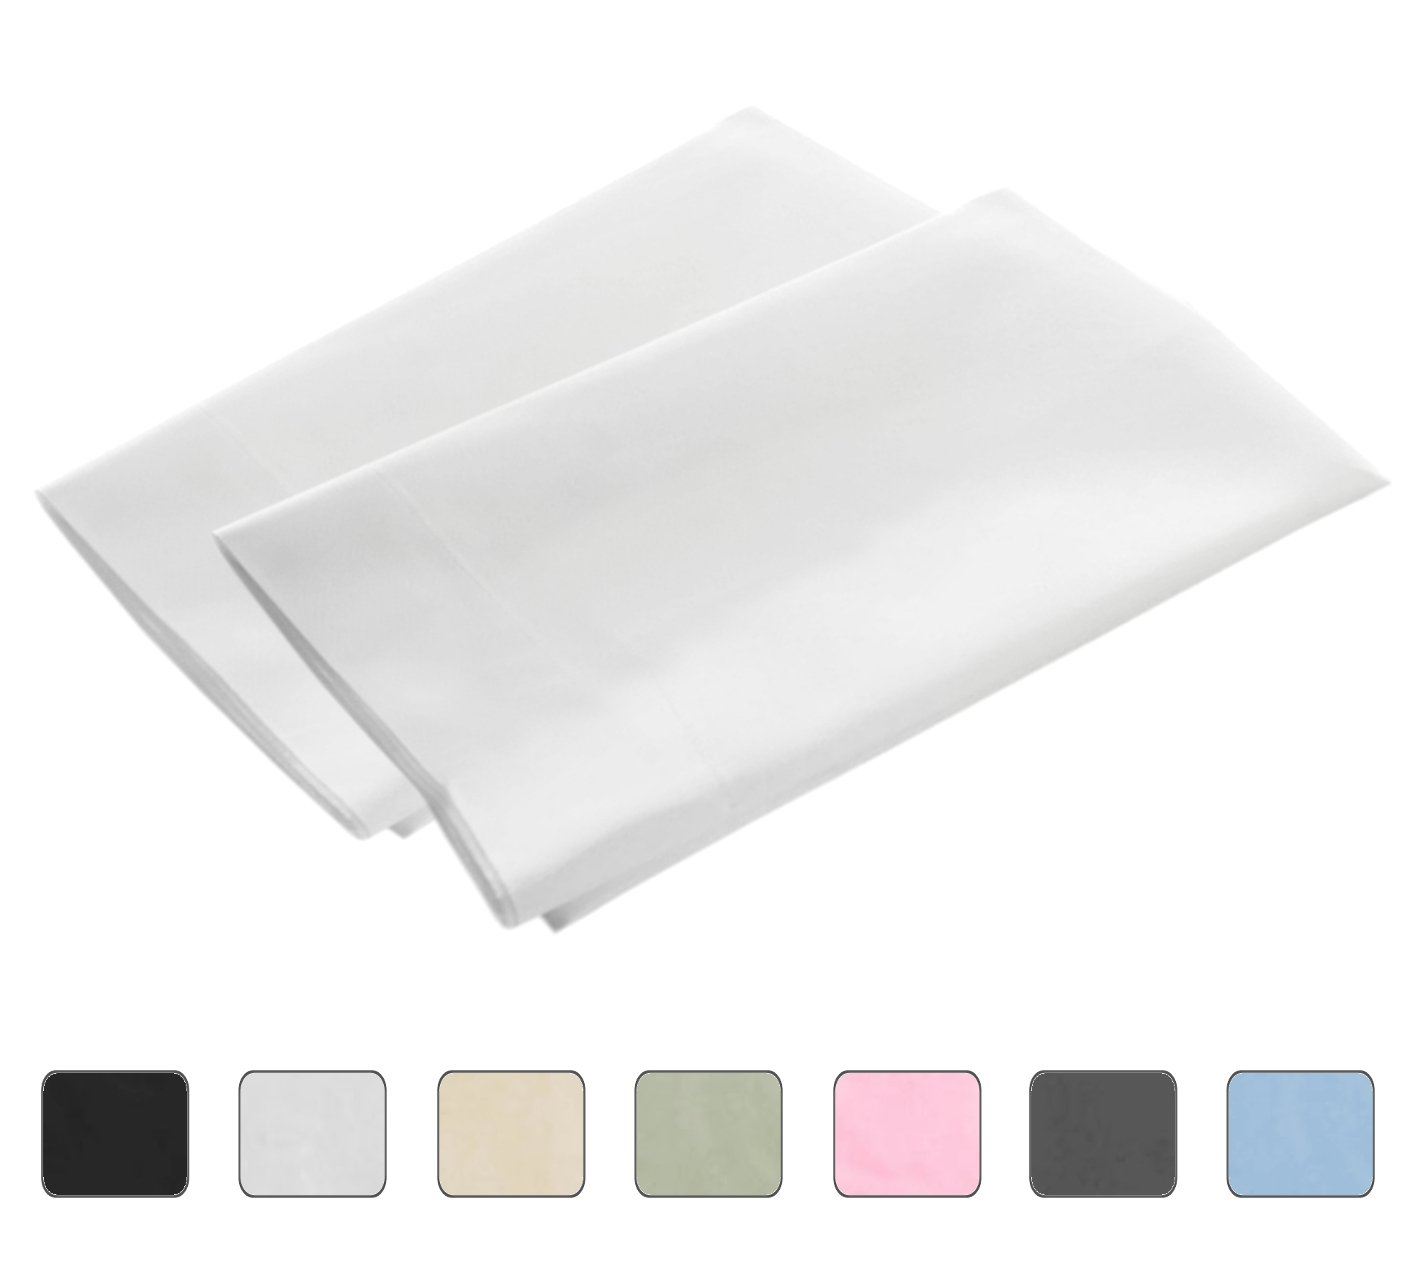 Cheap white pillowcases for crafts - White Standard 4 Hems Set Of 2 Pillowcases 300 Thread Count 100 Long Staple Egyptian Cotton Luxury Hotel Quality 21x32 Fits 20x26